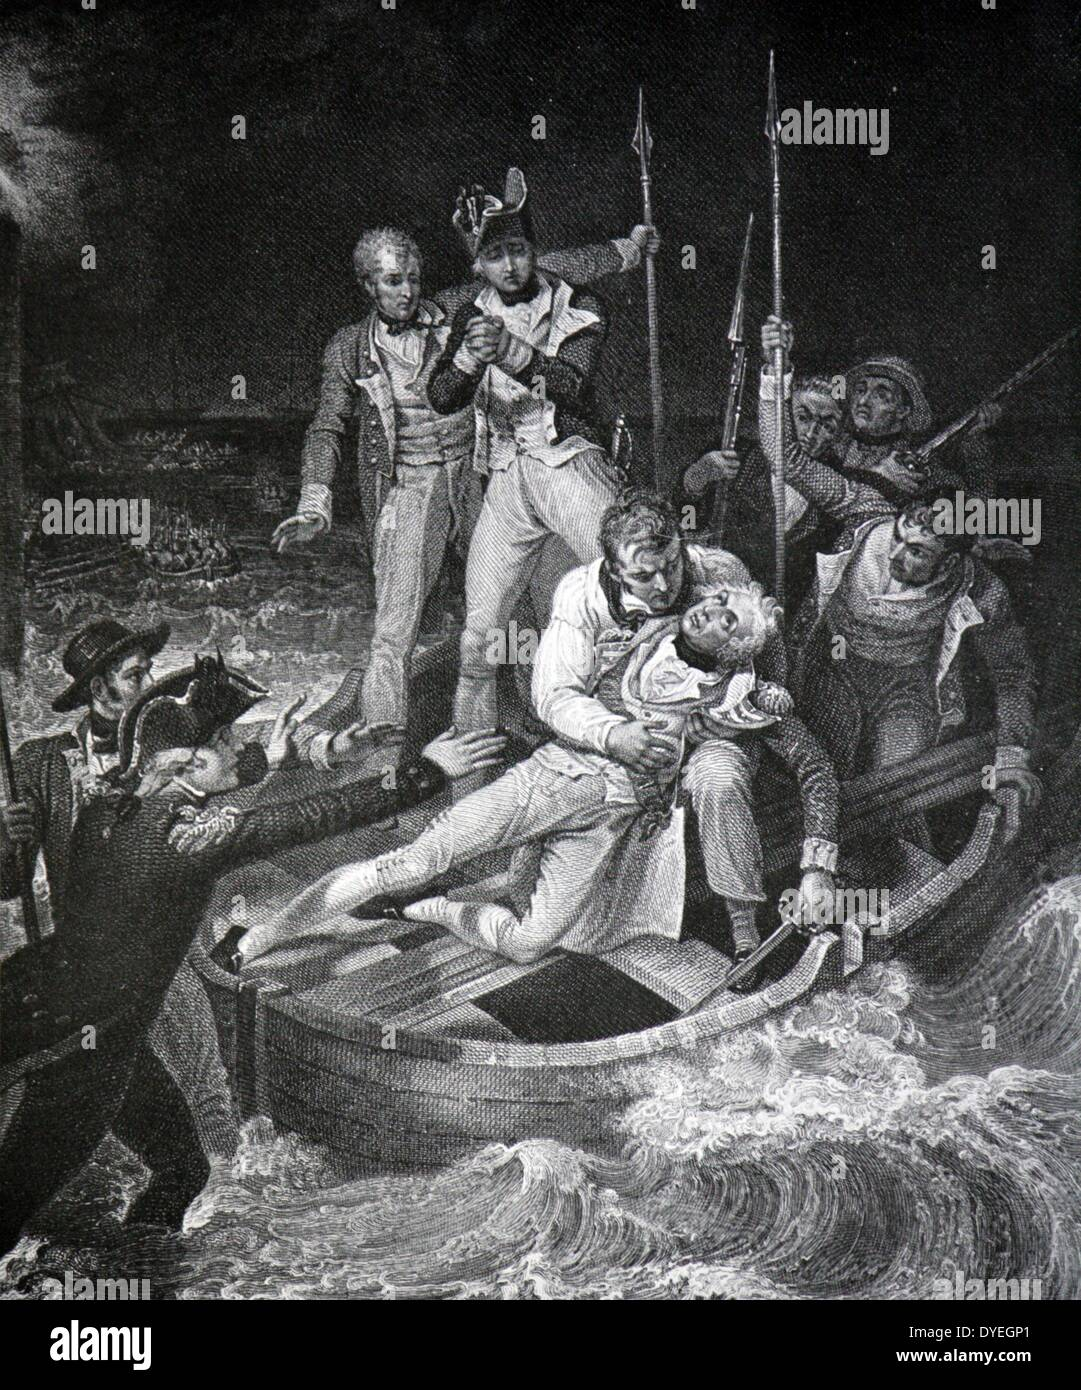 Engraving of Nelson wounded at Tenerife - Stock Image